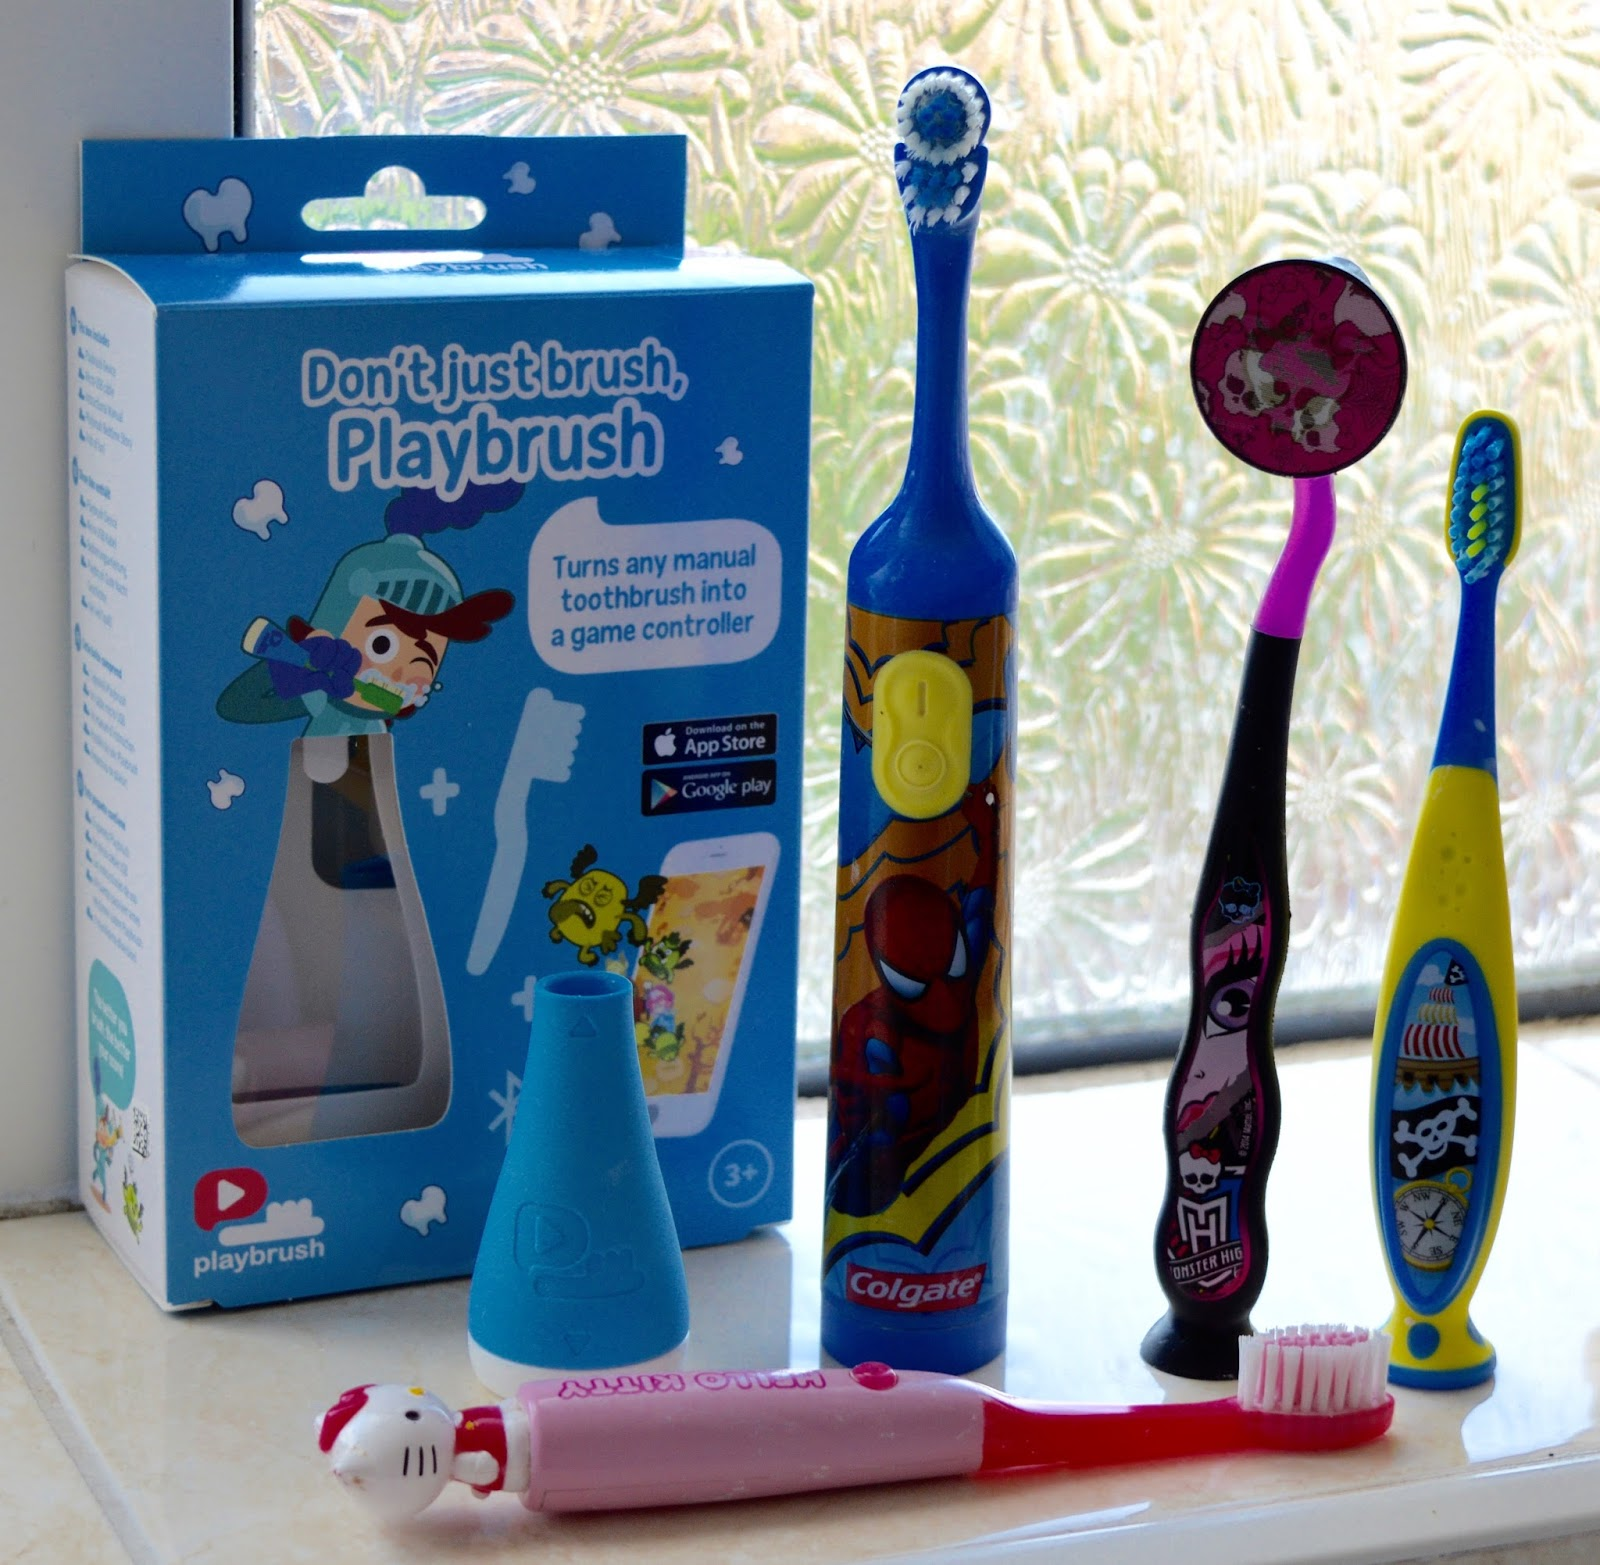 Don't just brush, Playbrush review | Turn your child's toothbrush into a fun game - not compatible with all brushes